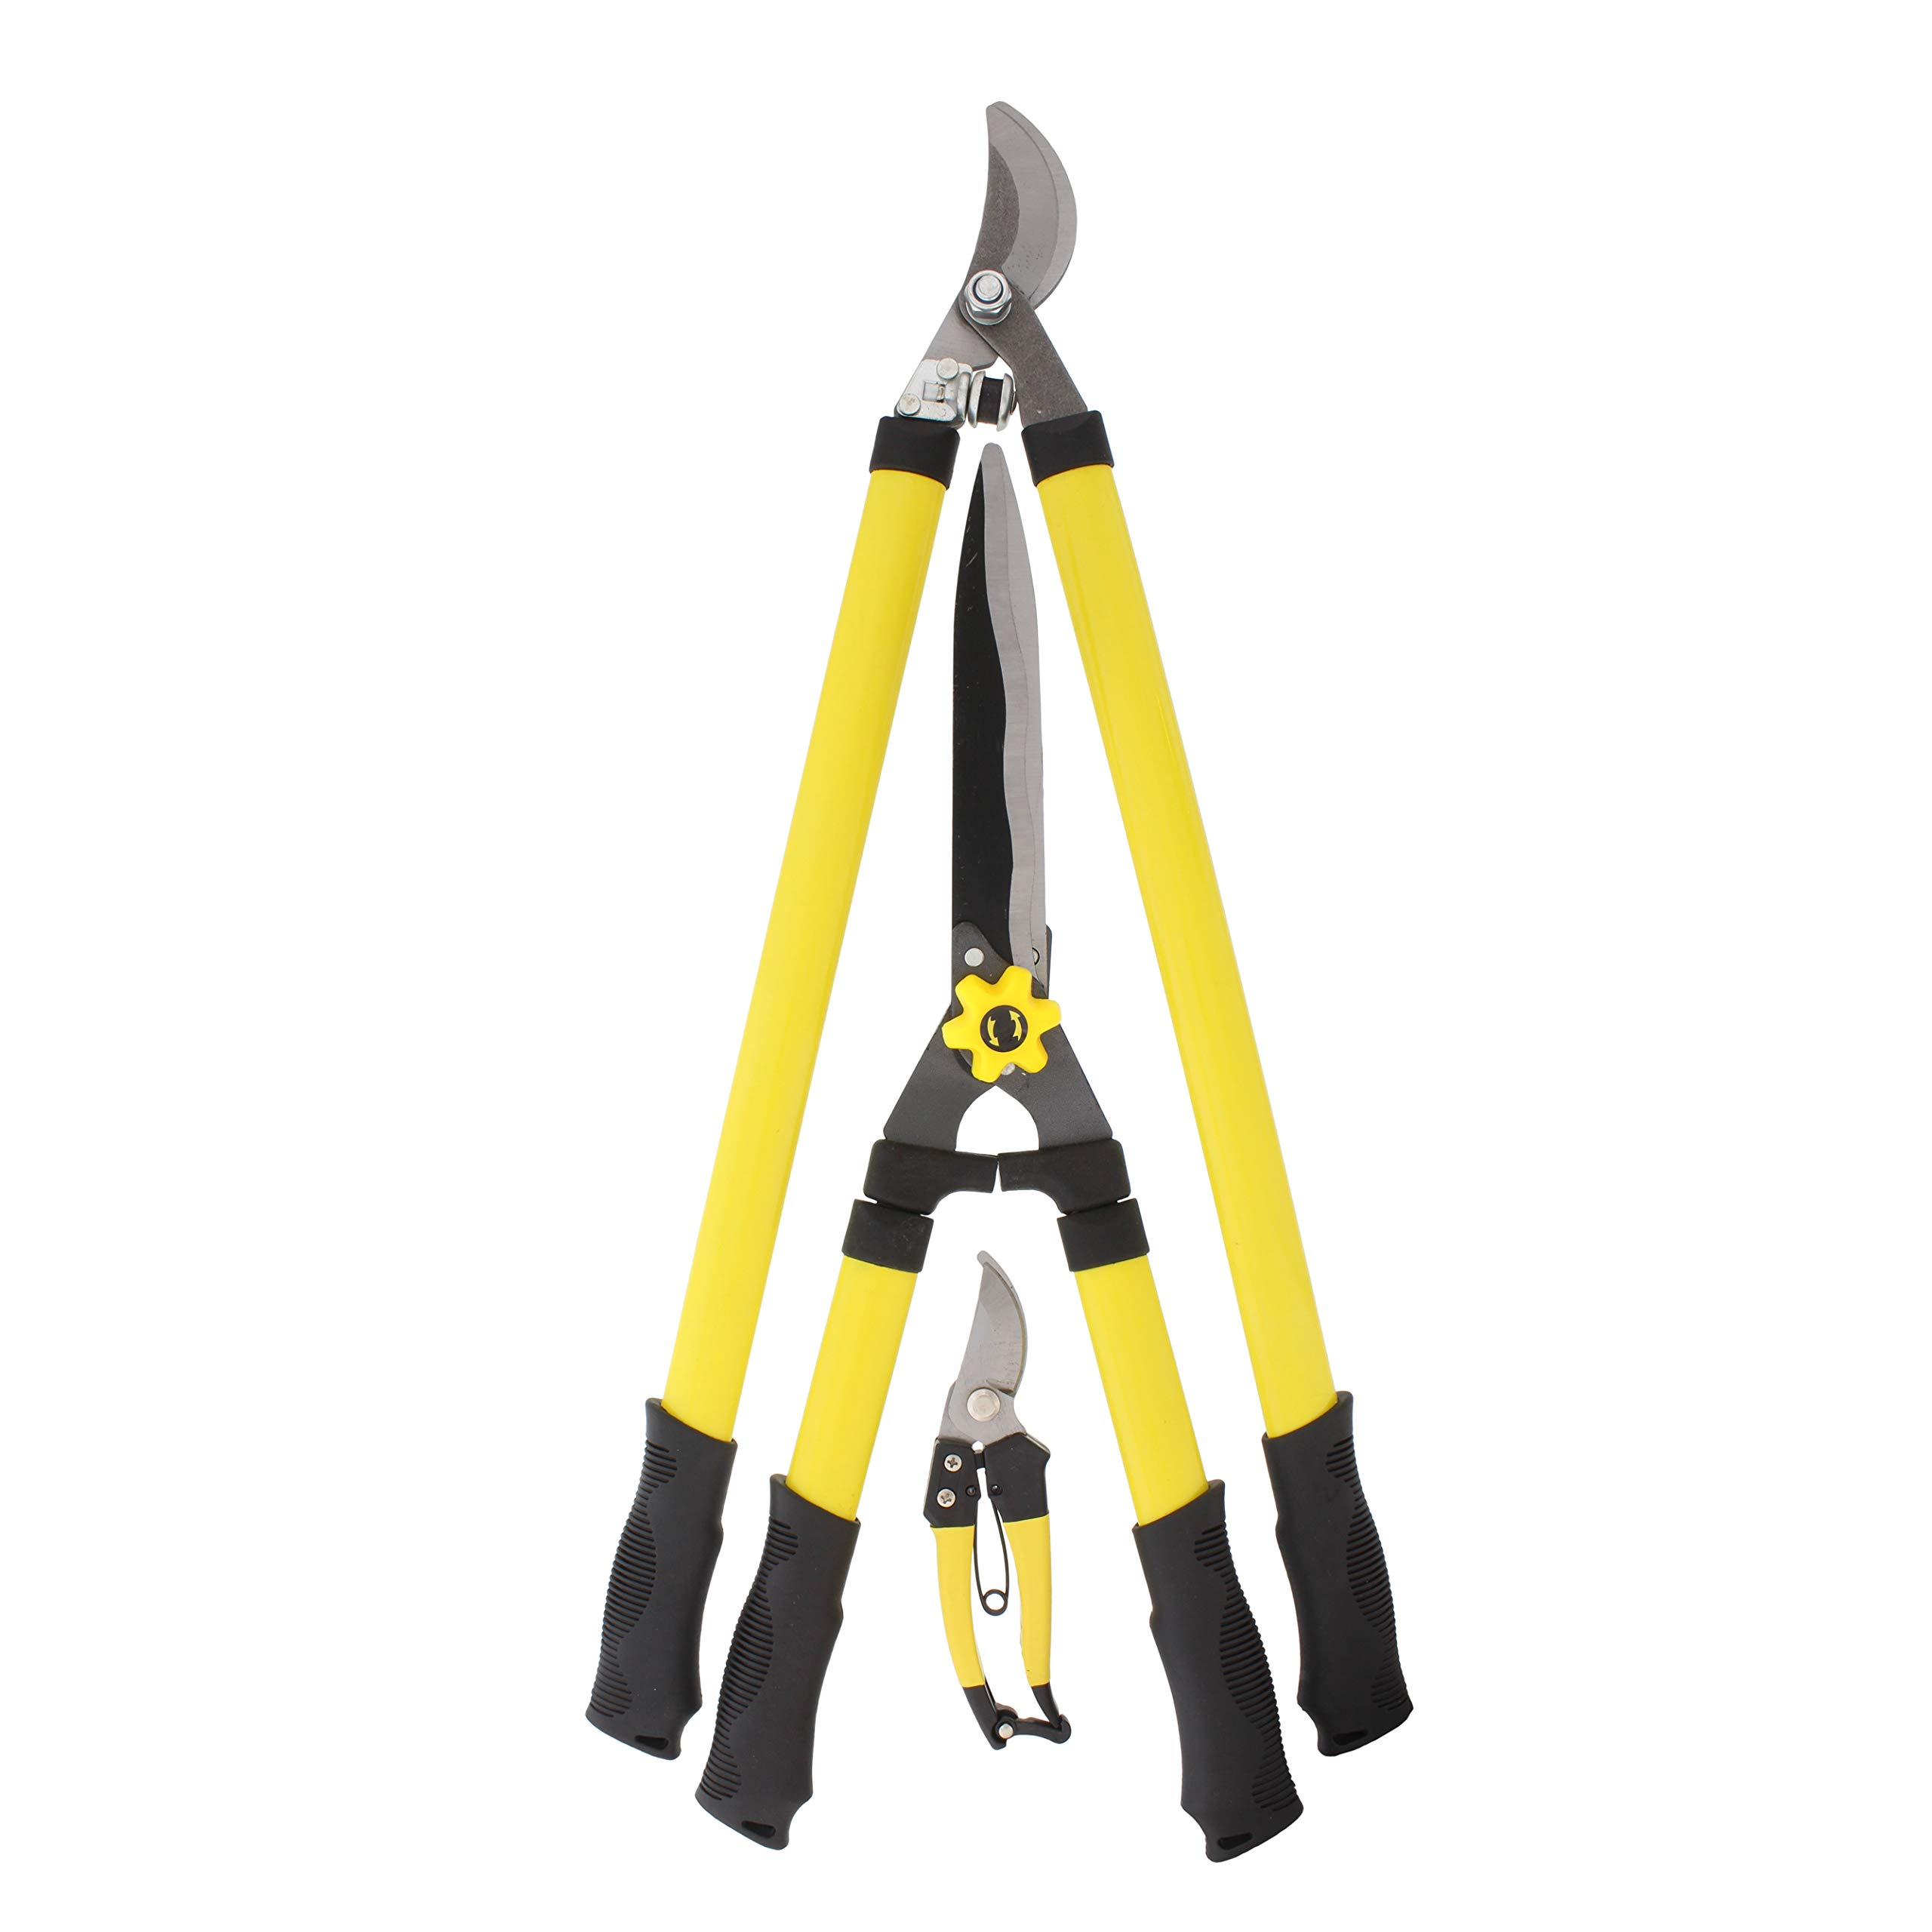 H.B. Smith Tools 3-Piece Pruner Set for Lawn and Garden by H.B. Smith Tools